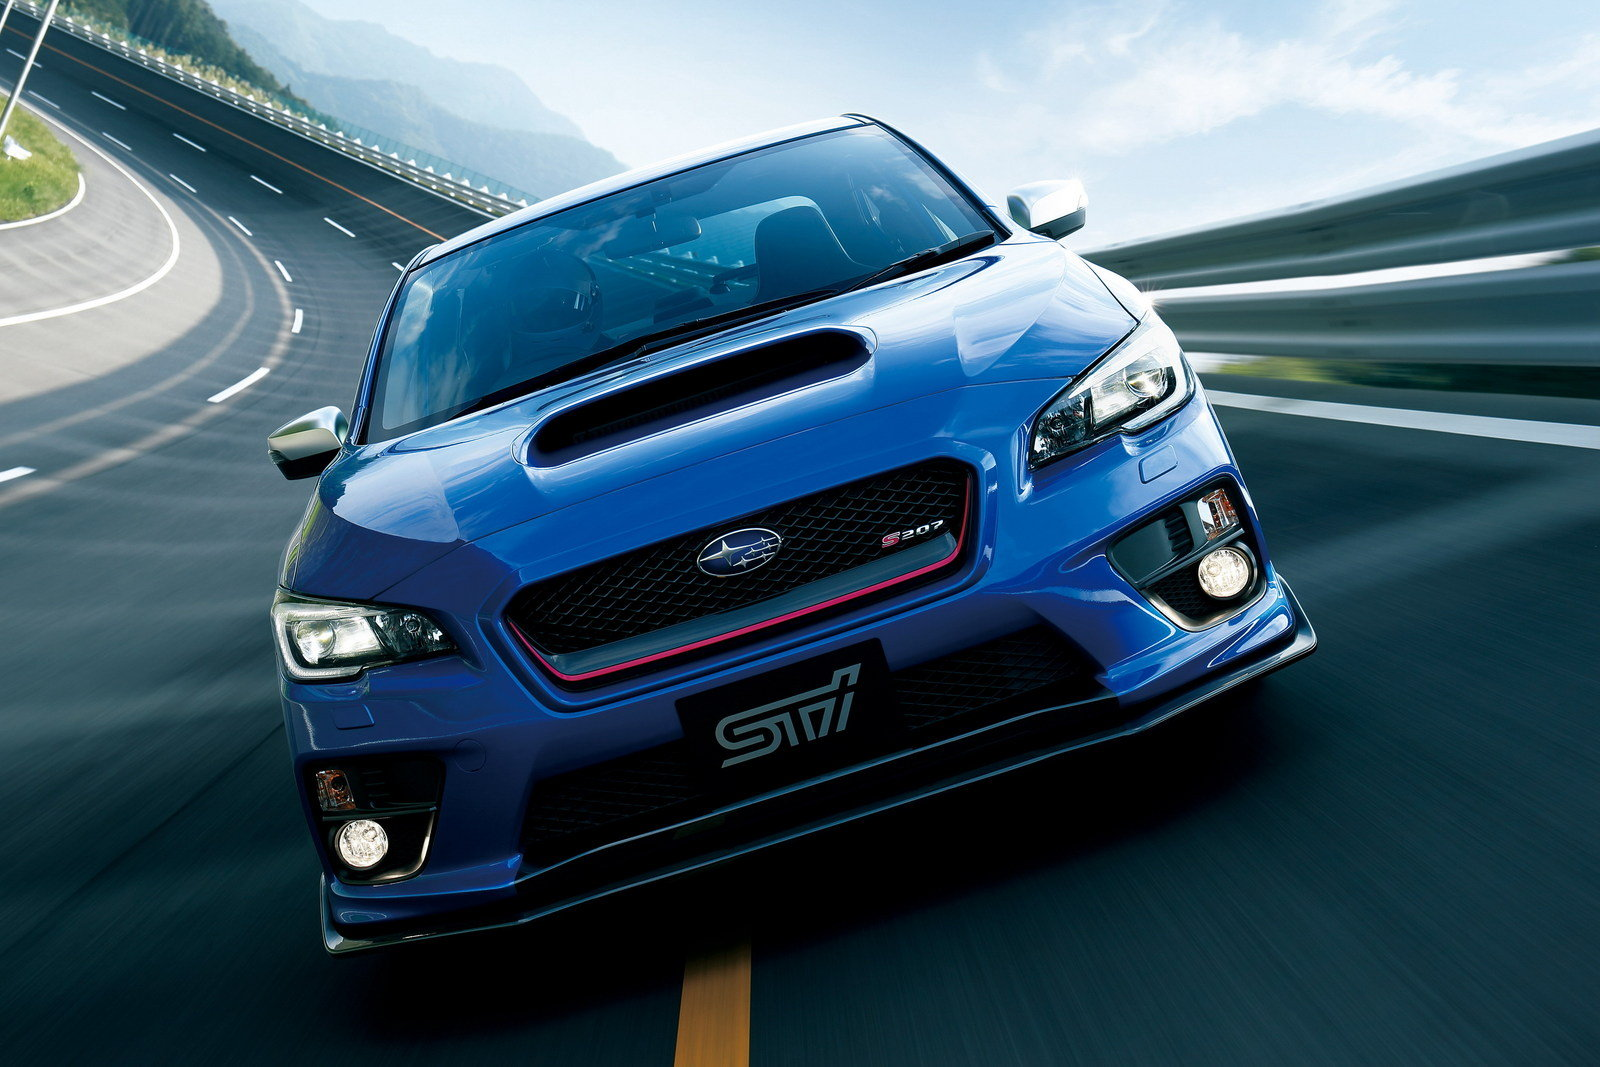 2016 subaru wrx sti s207 limited edition picture 653293 car review top speed. Black Bedroom Furniture Sets. Home Design Ideas